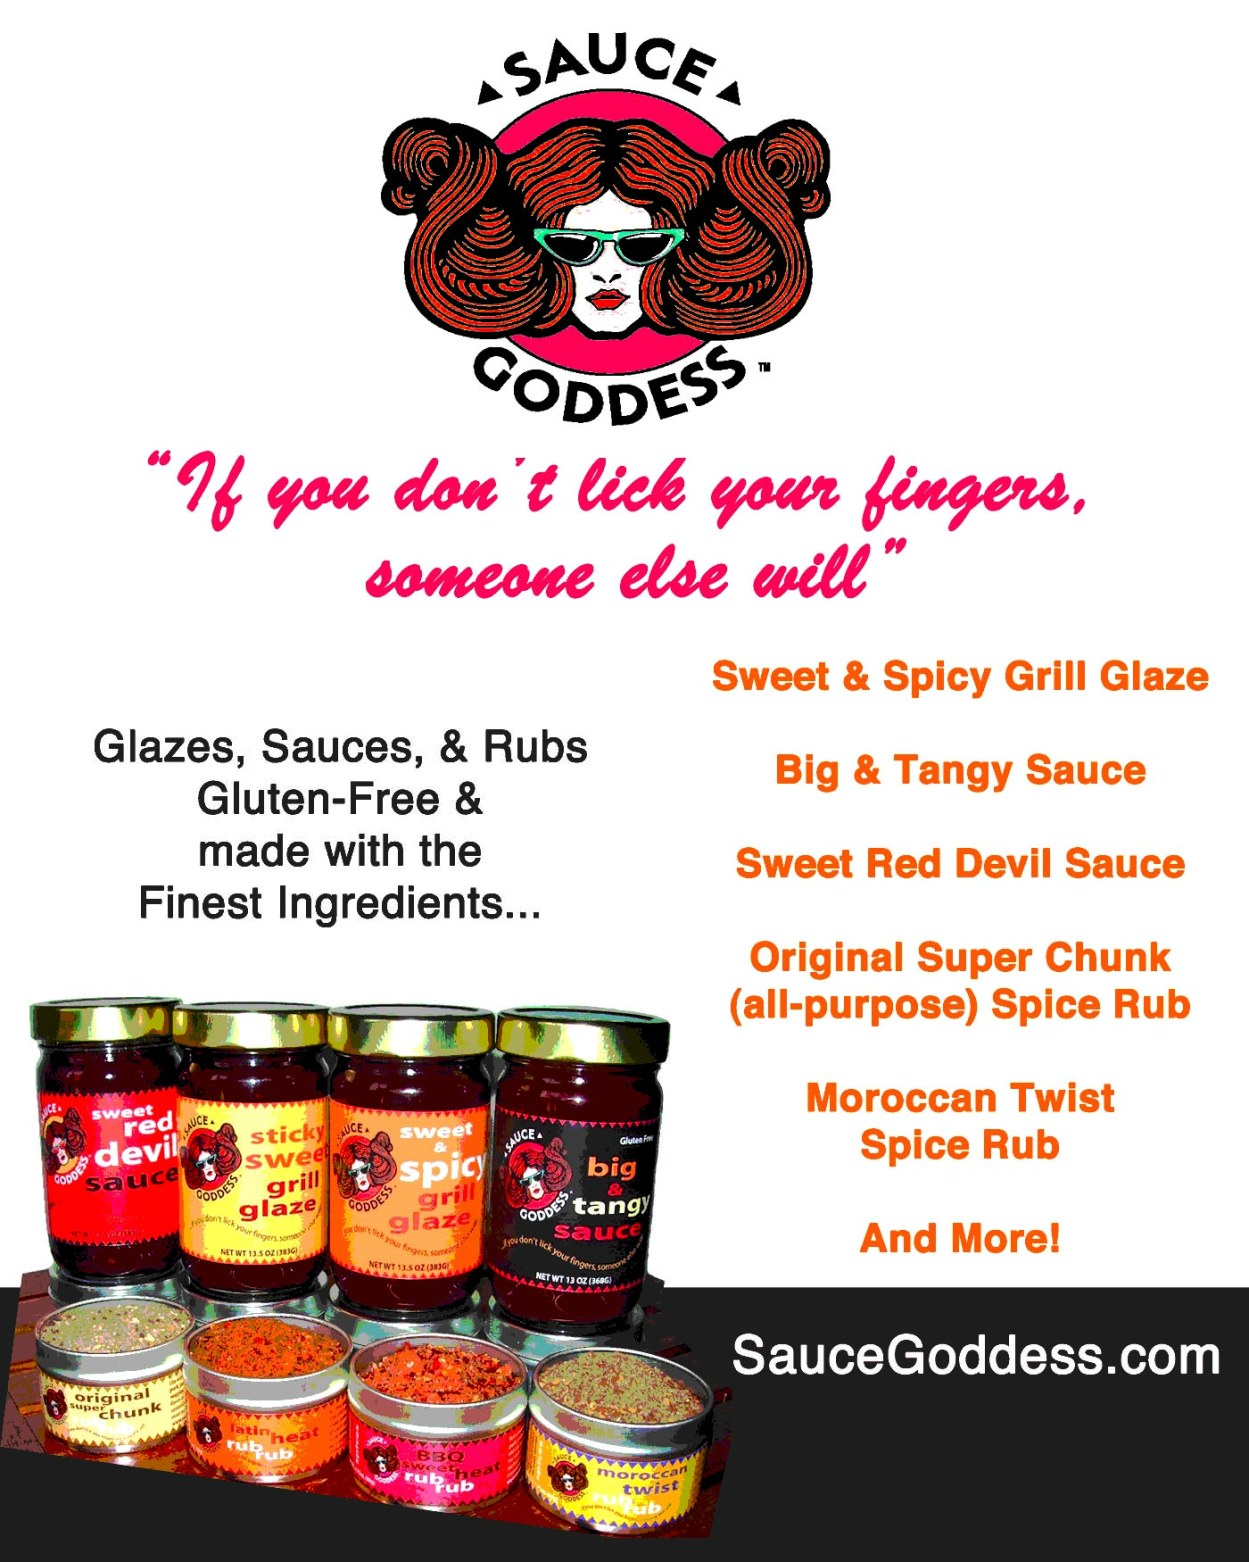 Sauce Goddess Advertisement - Chile Chili Festival 2012